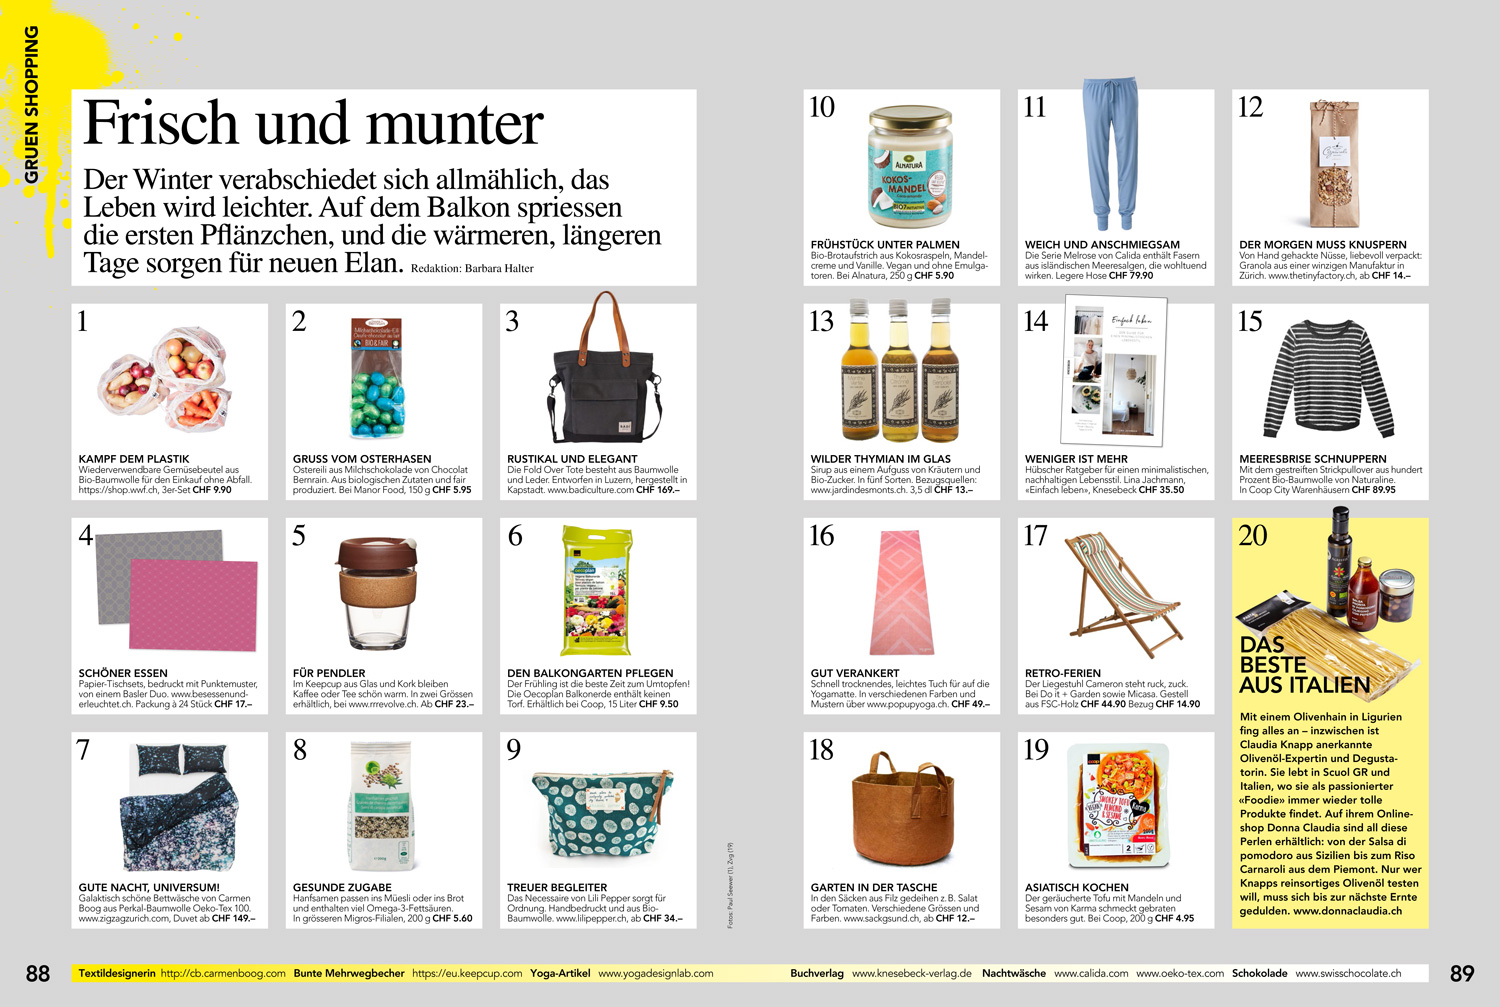 Schweizer-Illustrierte_Badi-Culture_Fold-Over-Tote_April